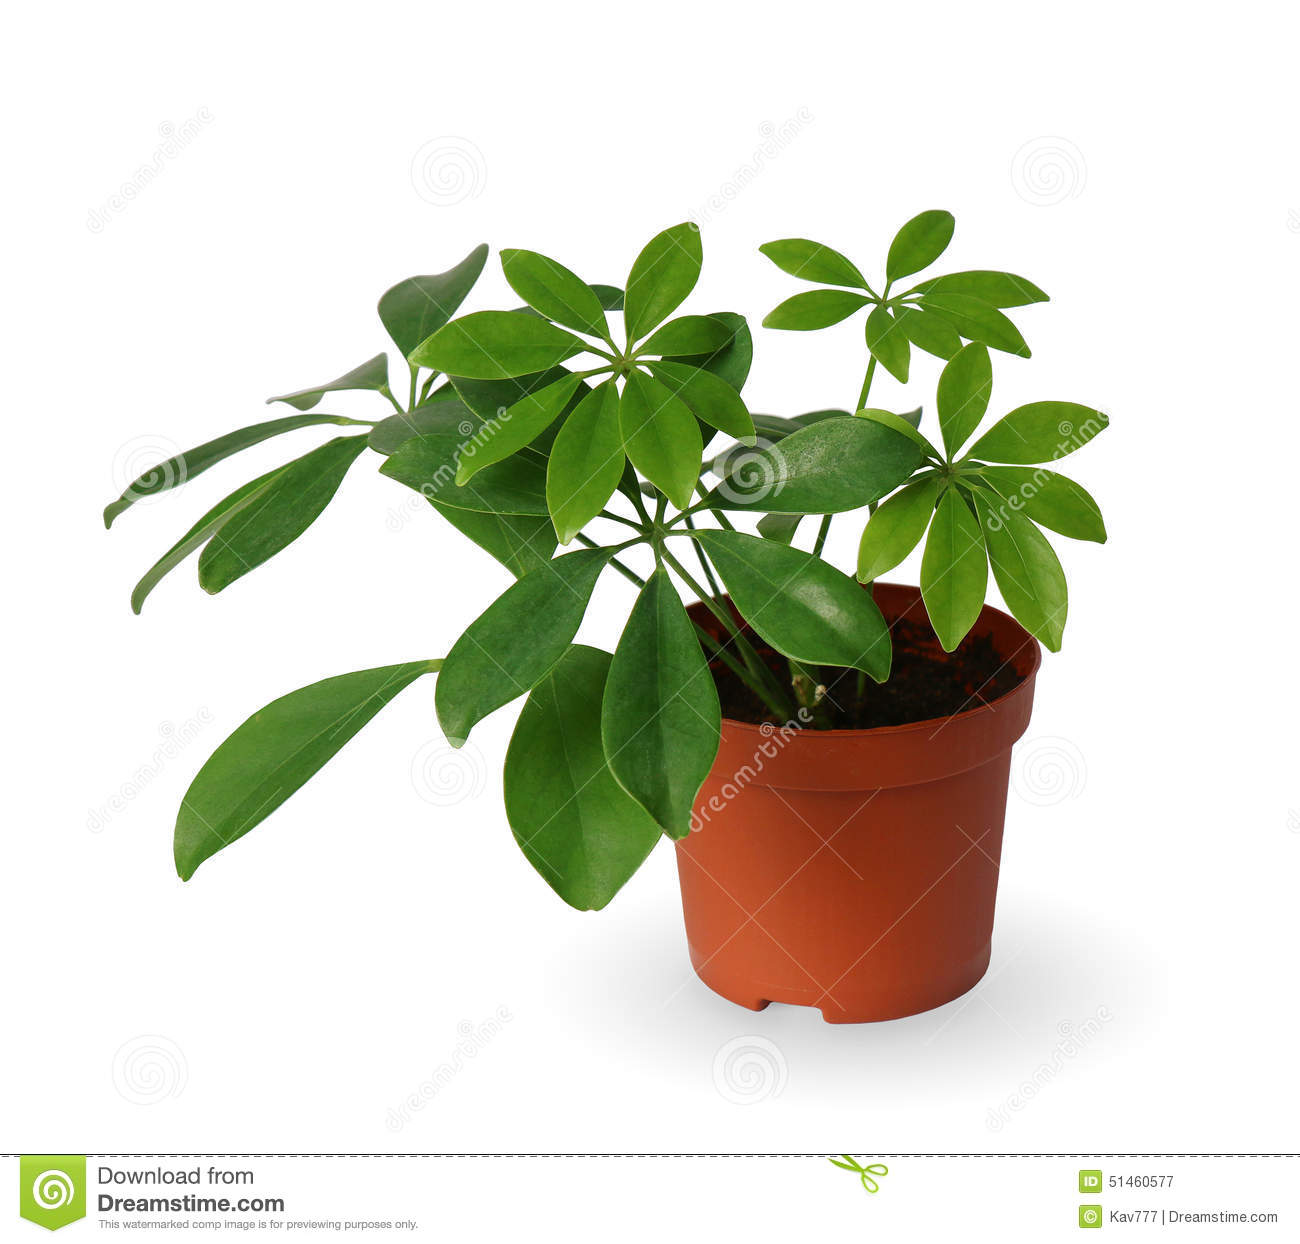 Plante d 39 int rieur jeune schefflera une usine mise en pot d 39 isolement au dessus du blanc photo for Pot de plante design